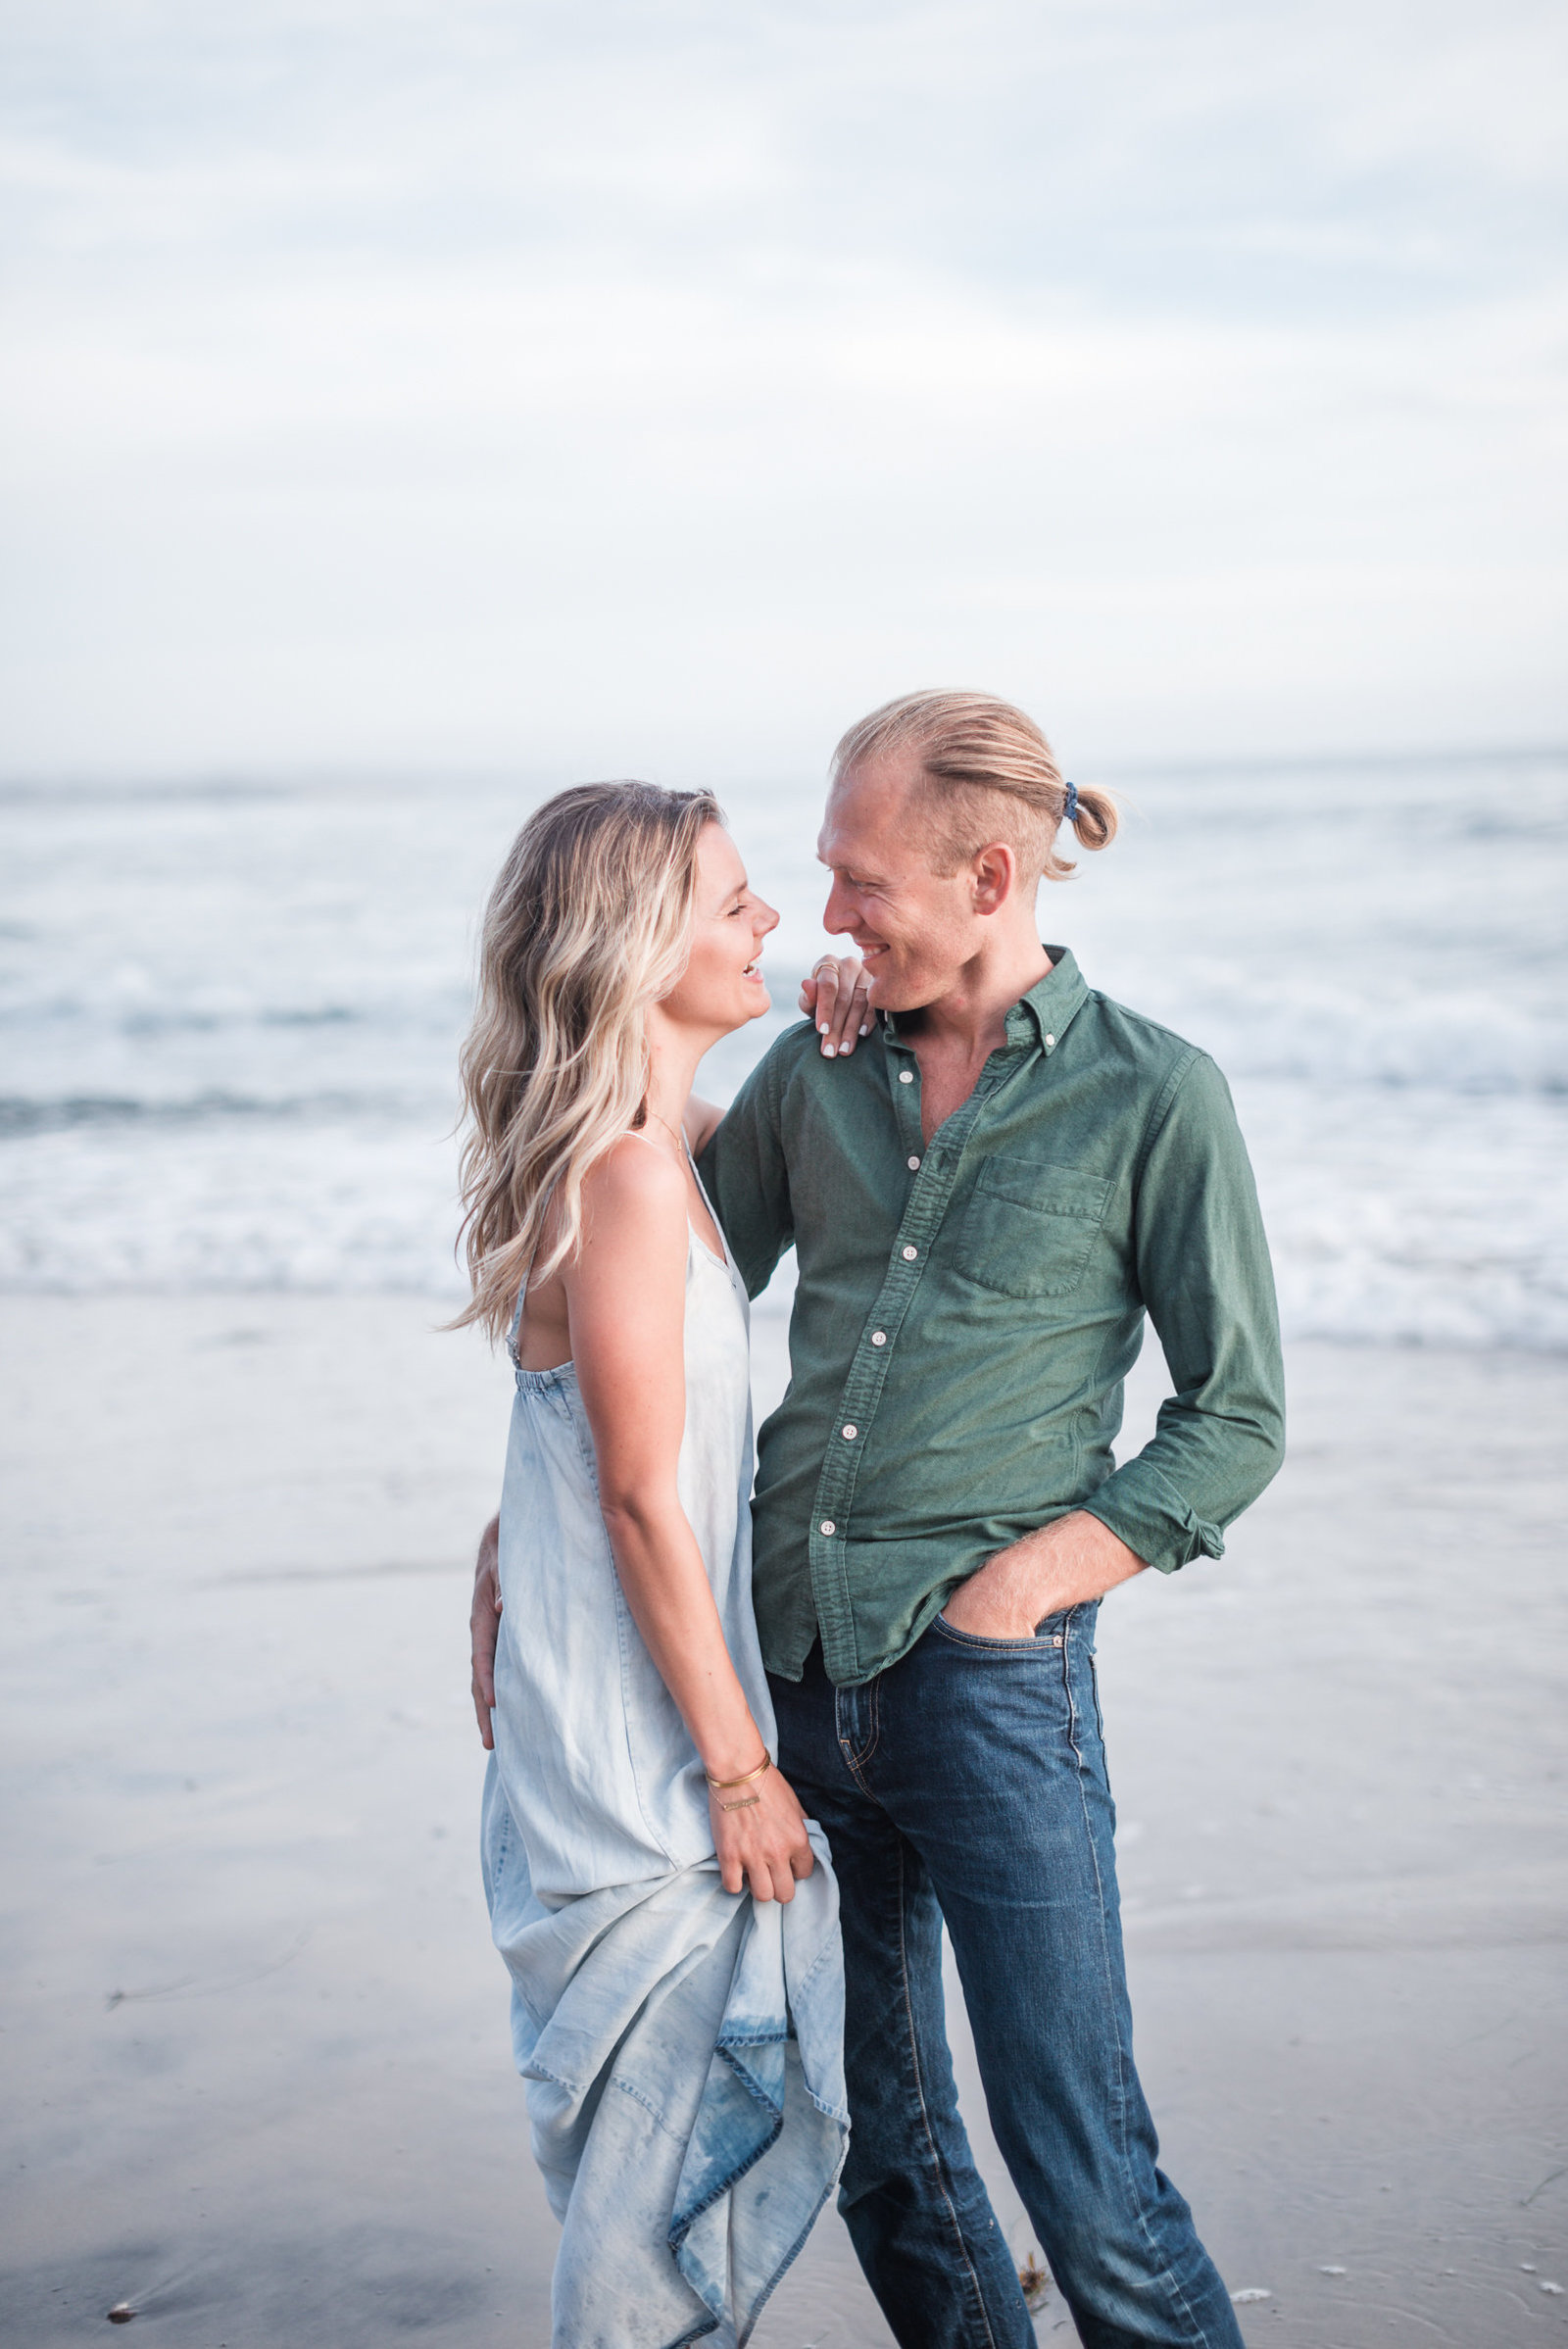 20180221-Pura-Soul-Photo-Encinitas-Engagement-Shoot-27